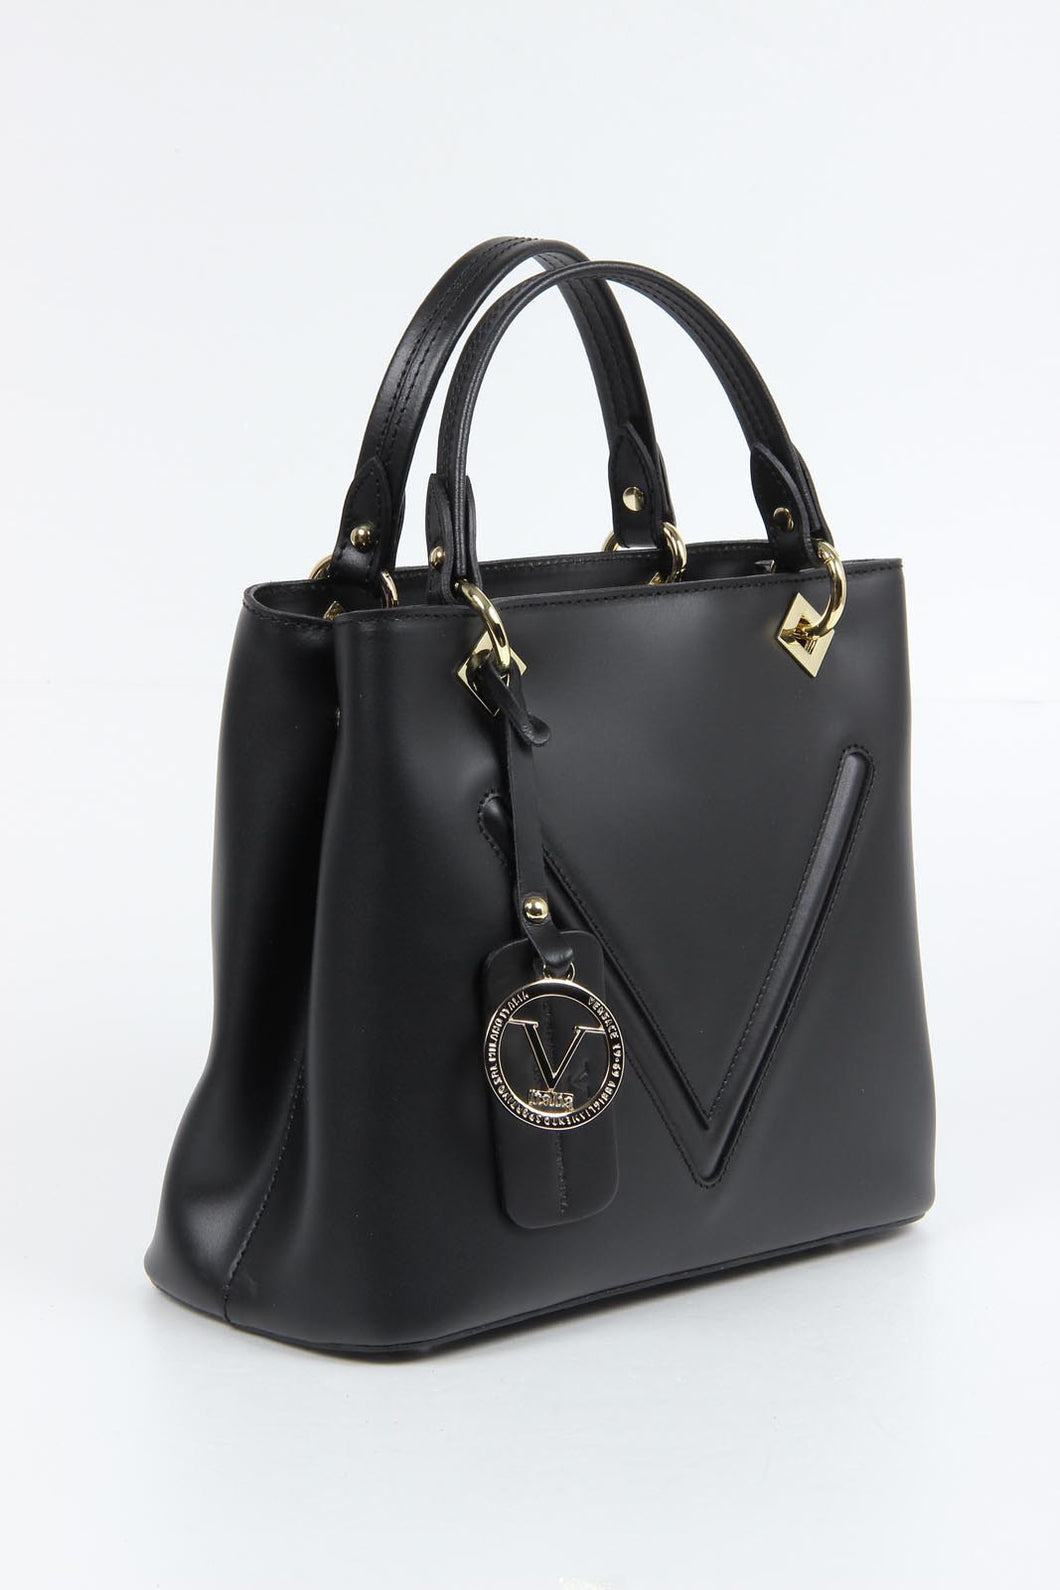 63264314596 ... VERSACE 1969 V ITALIA Leather Tote Bag - MilanoFashion56.com ...